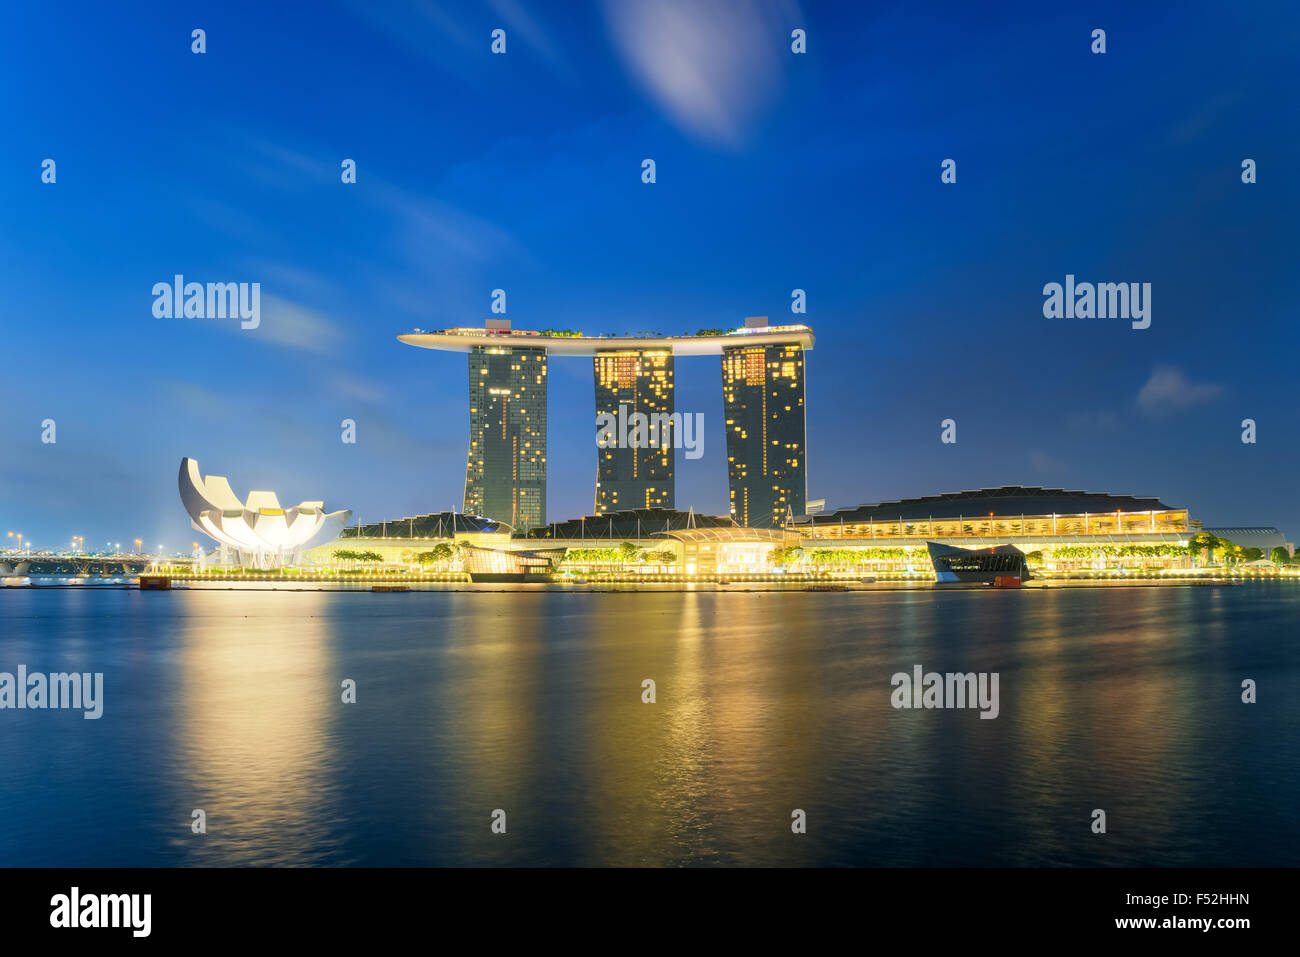 Wunderschönen Sonnenaufgang in Marina Bay in Singapur Stockbild